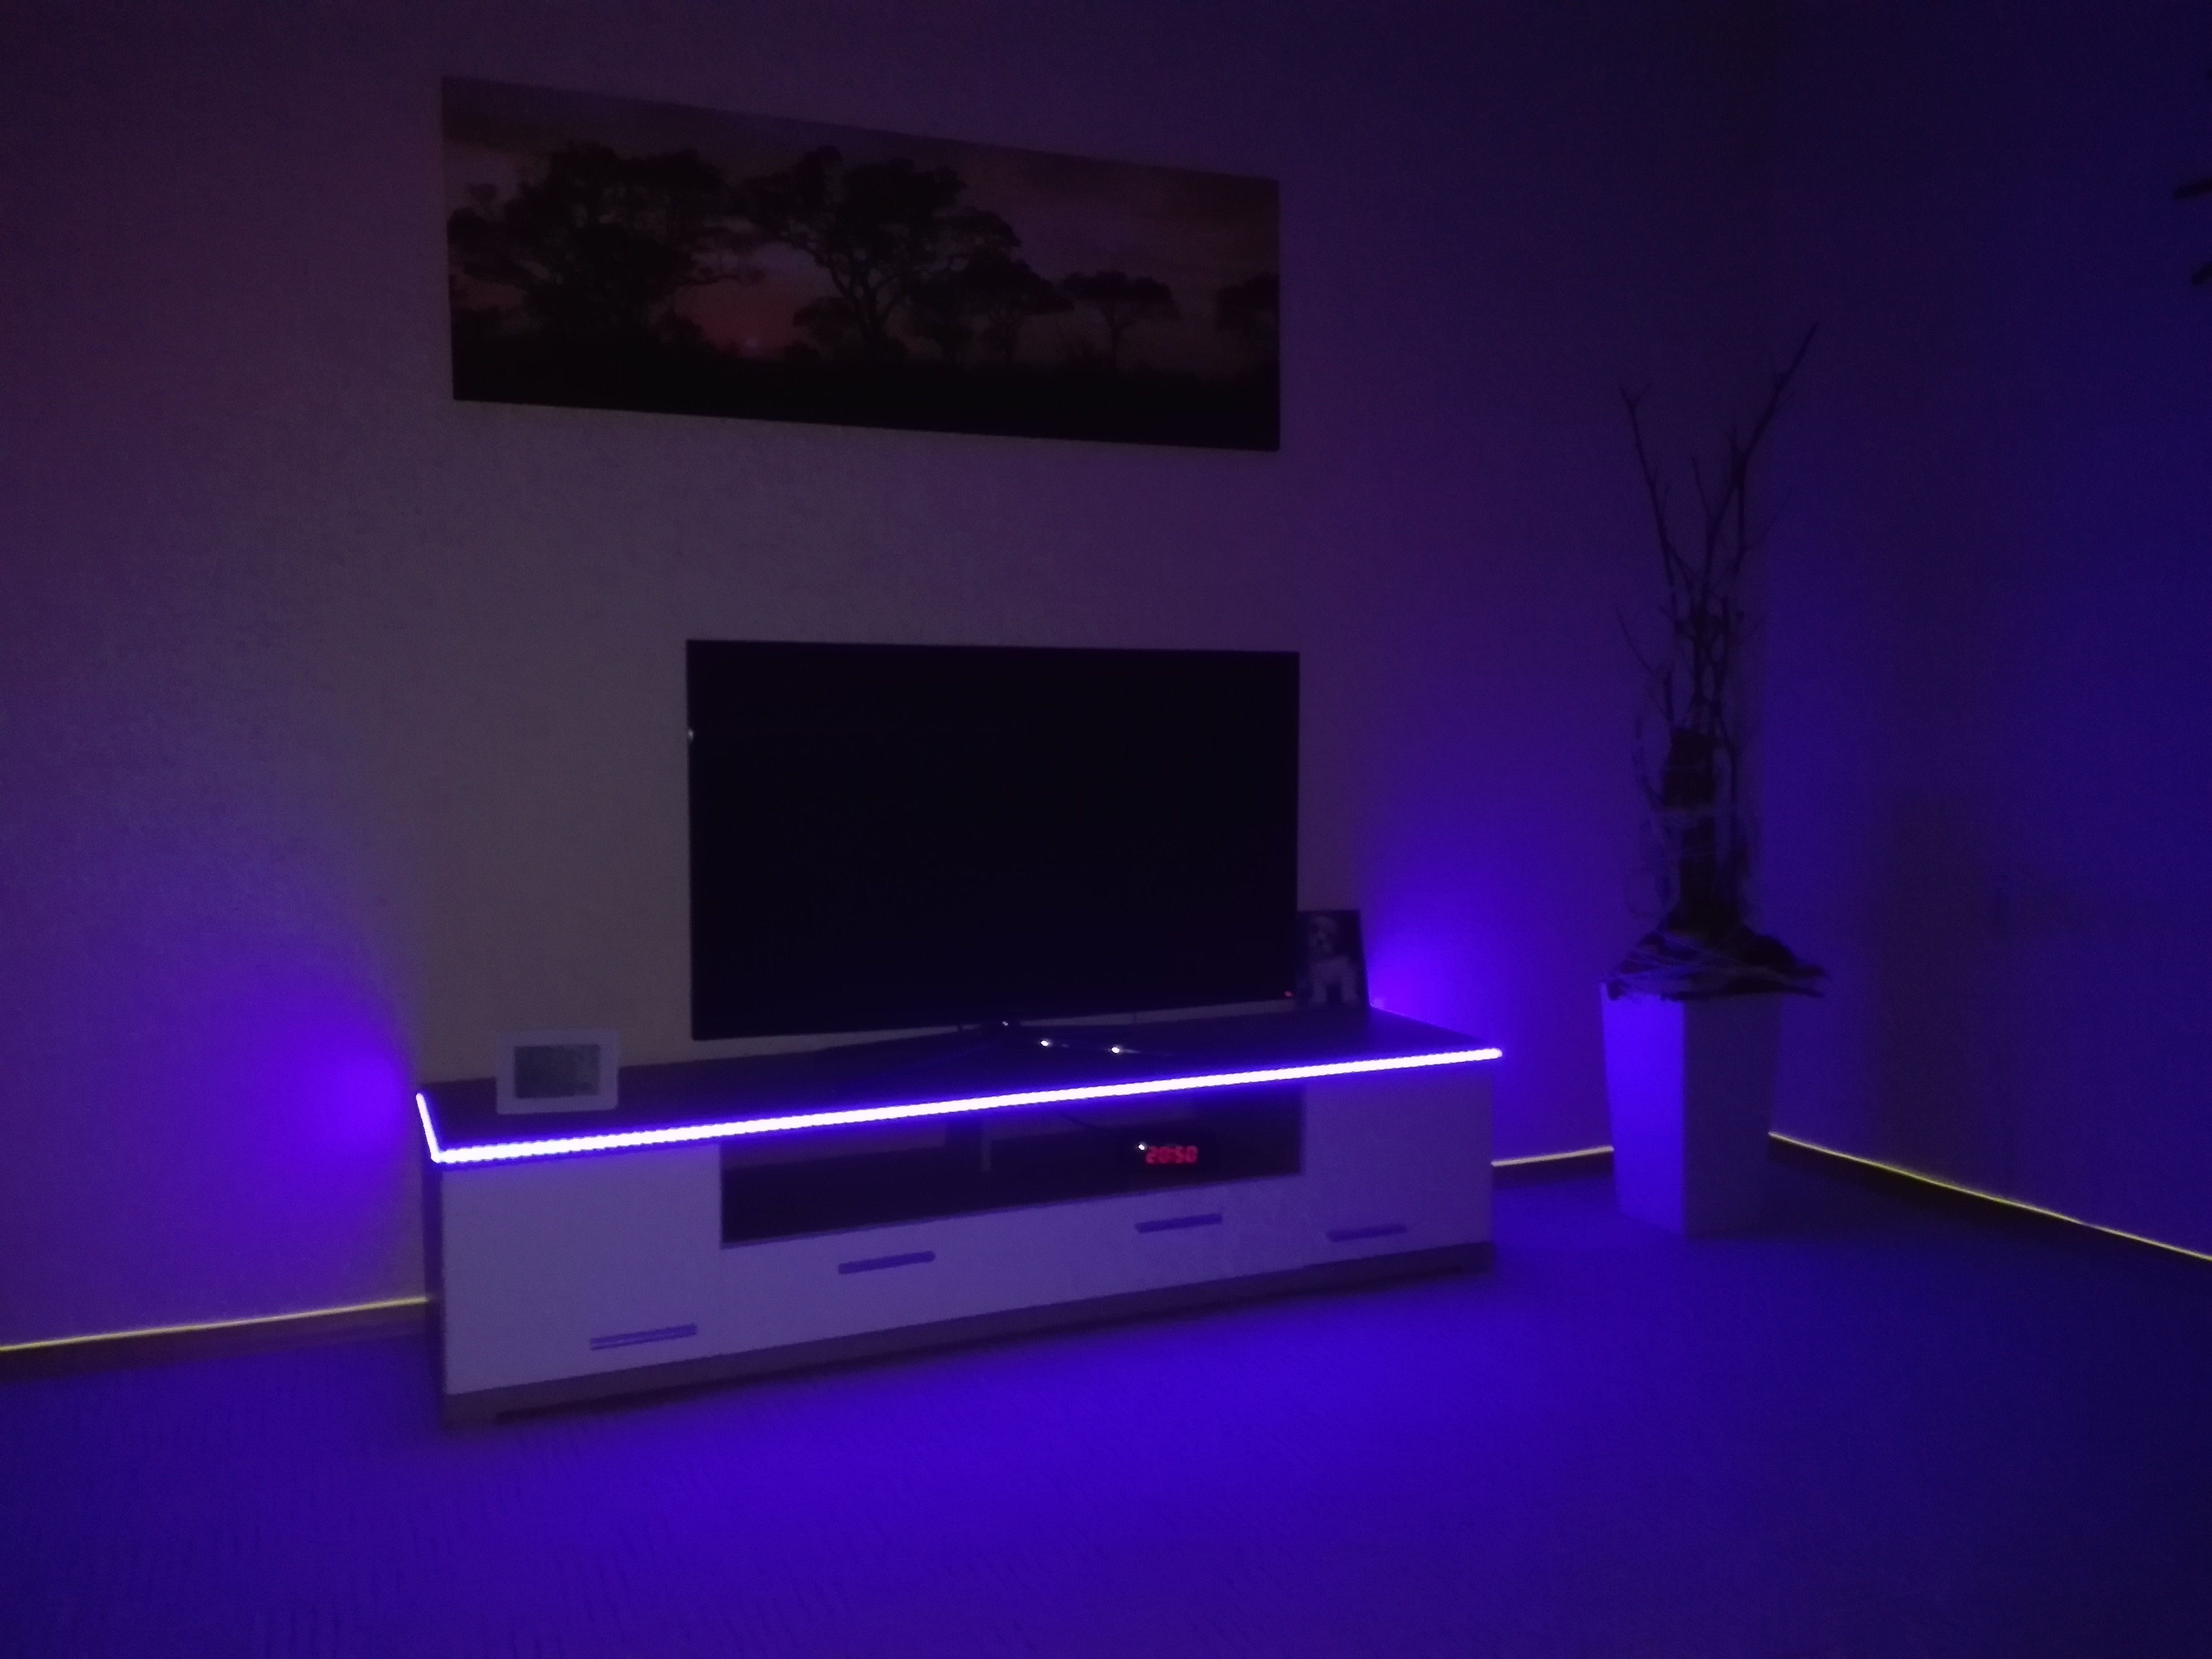 Pin By Razon Led Strip Lights Rgb On Oppas In 2020 Led Strip Lighting Strip Lighting Led Color Changing Lights